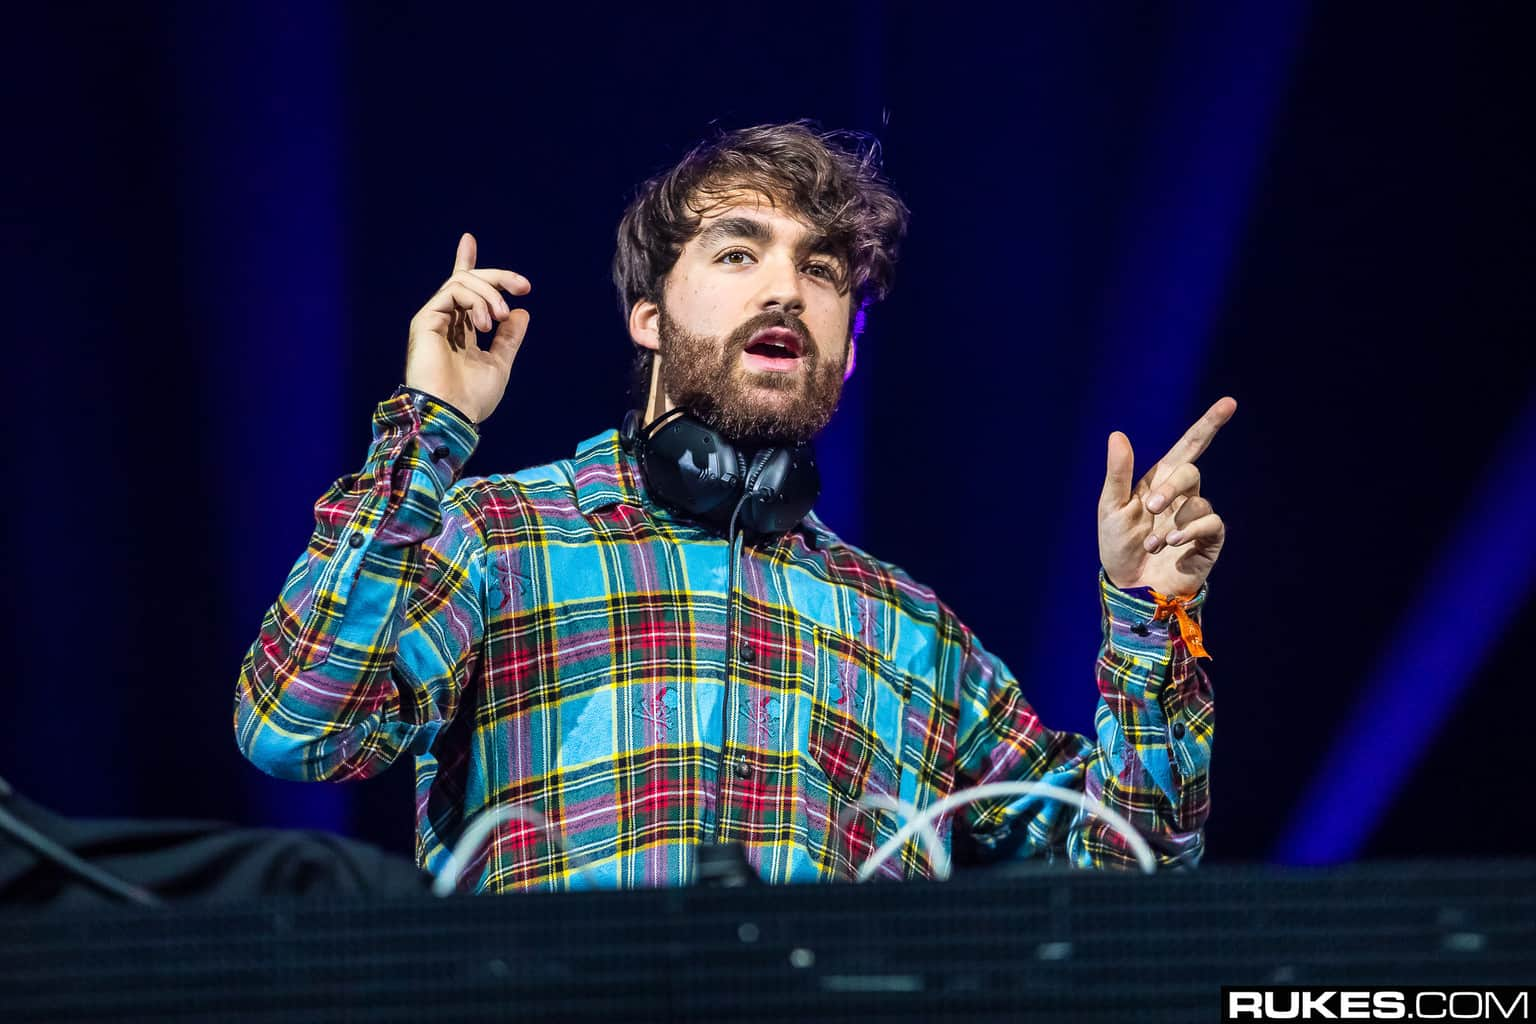 Oliver Heldens plays live on festival stage